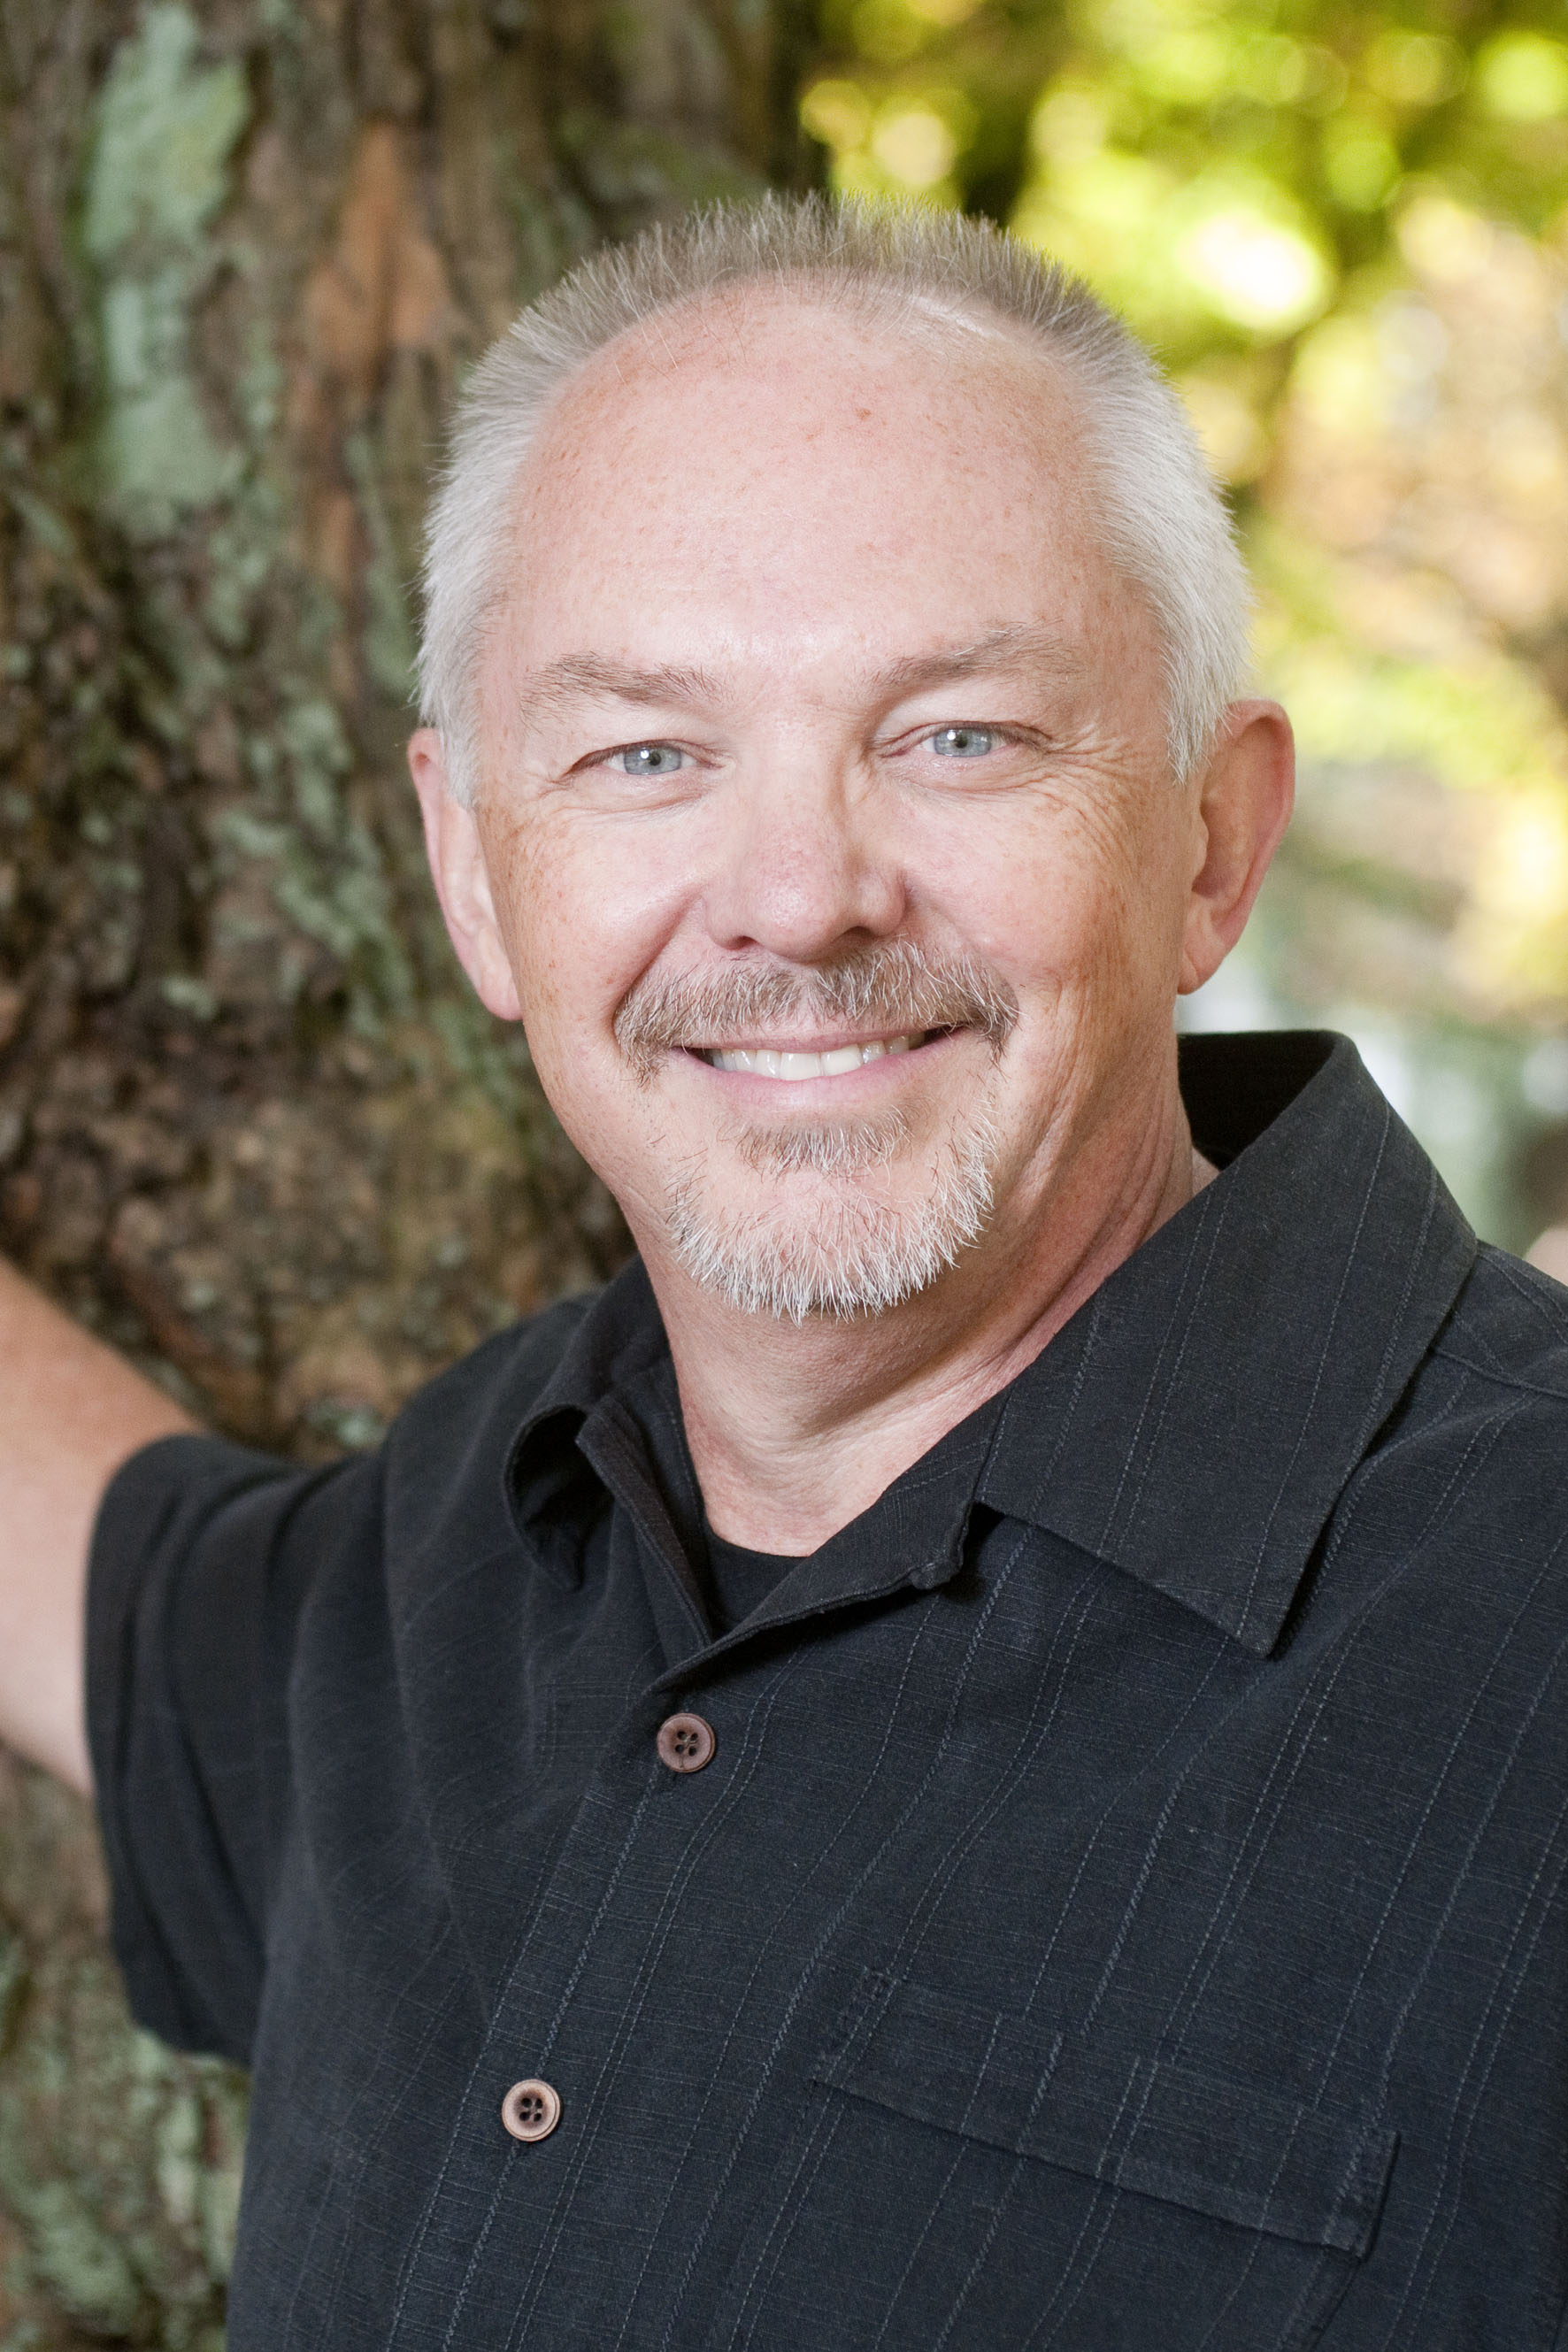 Paul young promo photo